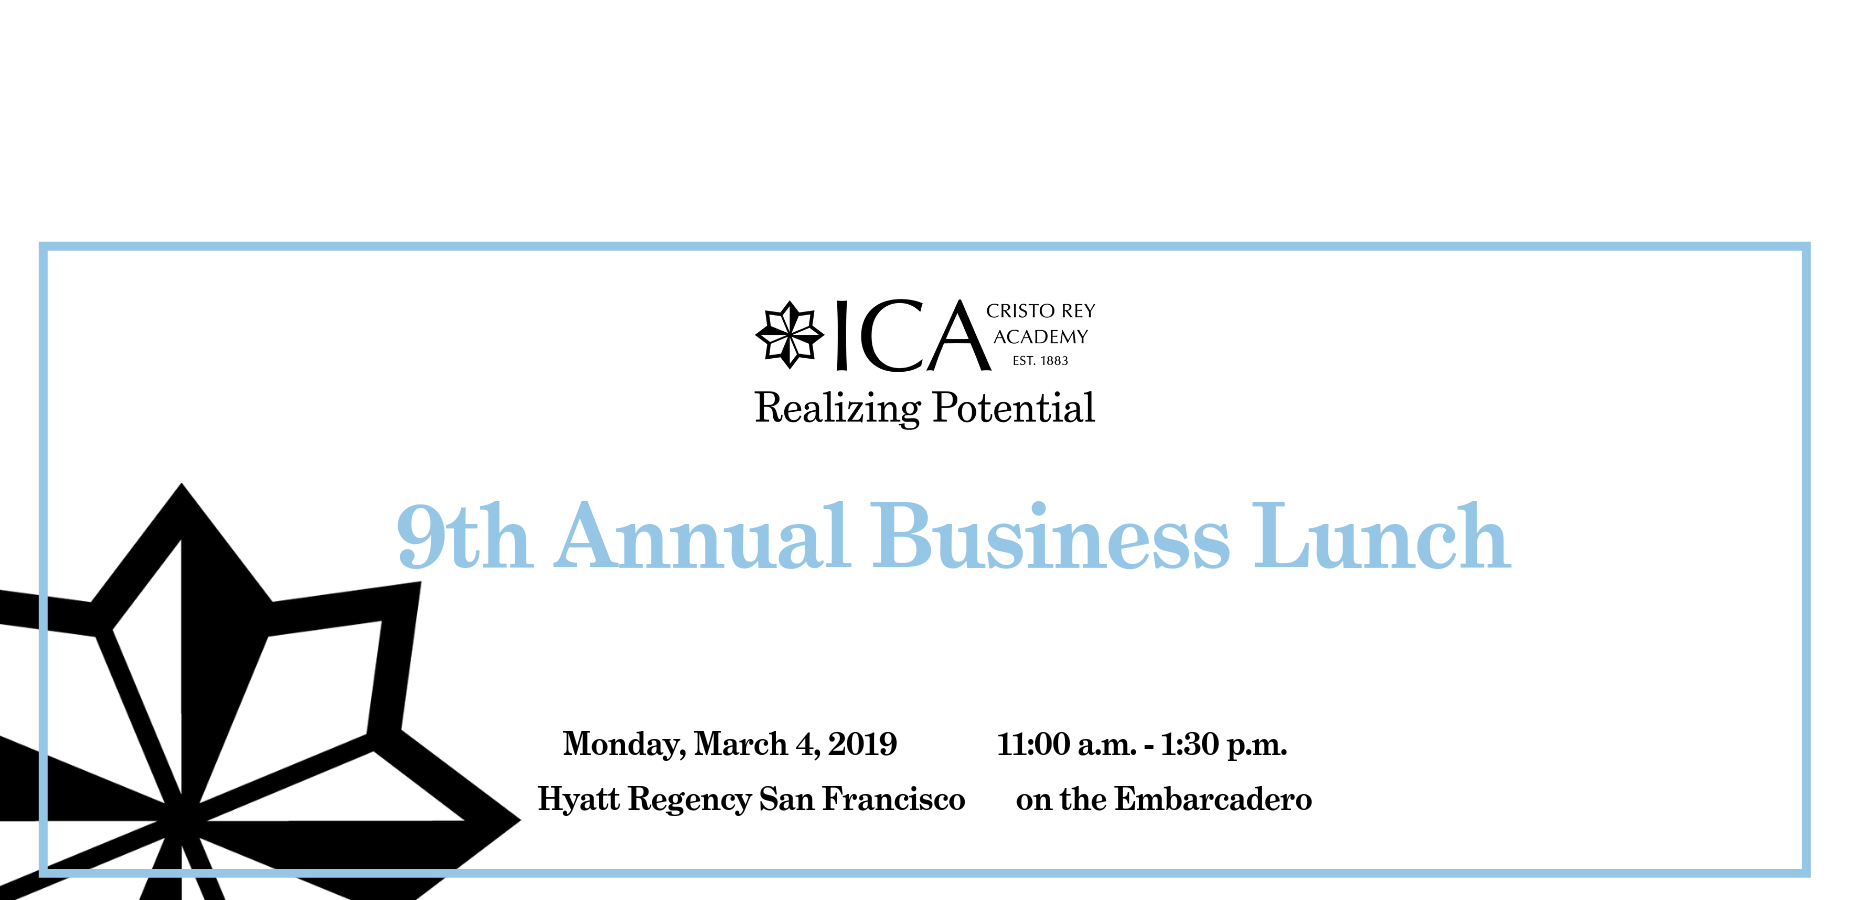 ad for 9th annual business lunch